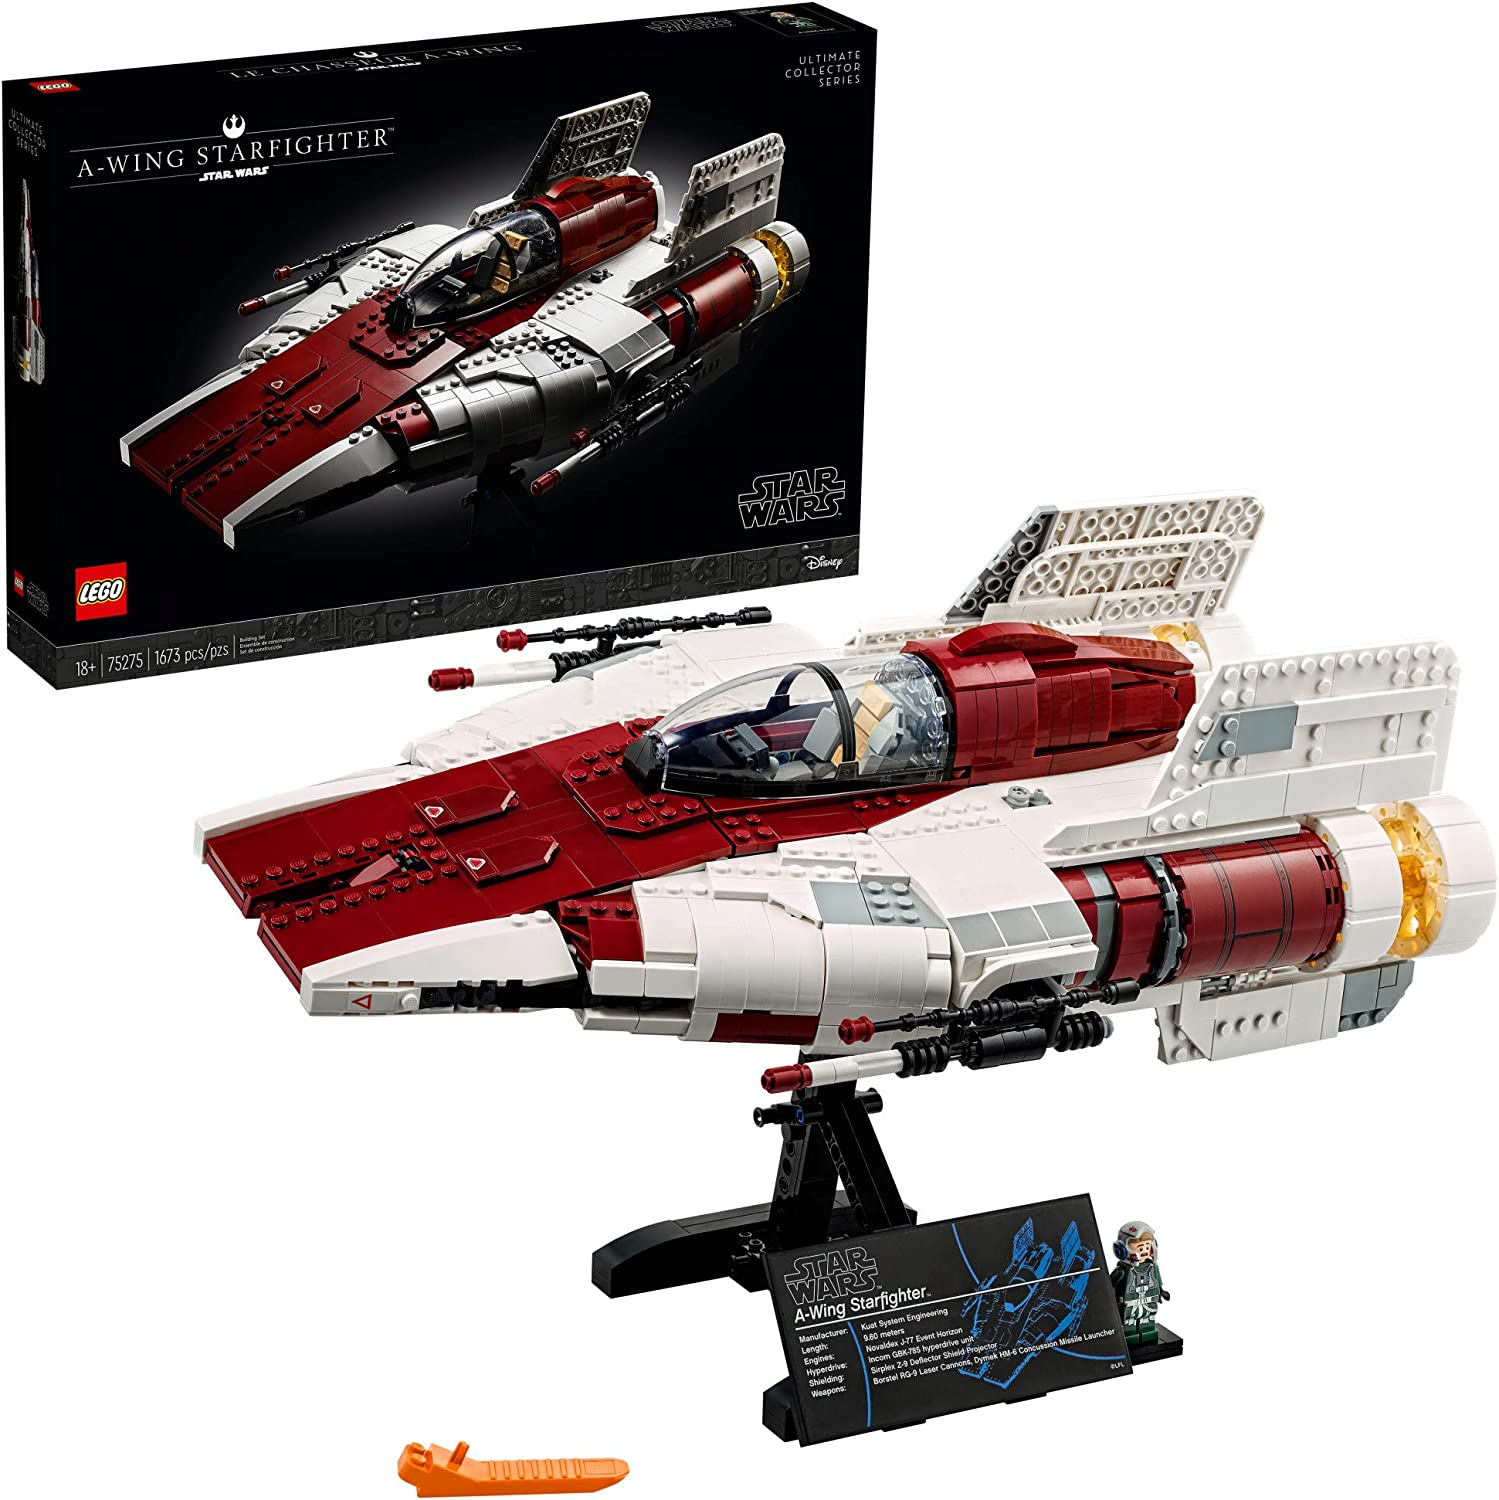 LEGO Star Wars A-wing Starfighter 75275 Building Kit; Collectible Building Set for Adults; Makes a Cool Birthday or Holiday Gift for Star Wars Fans, New 2020 (1,673 Pieces)